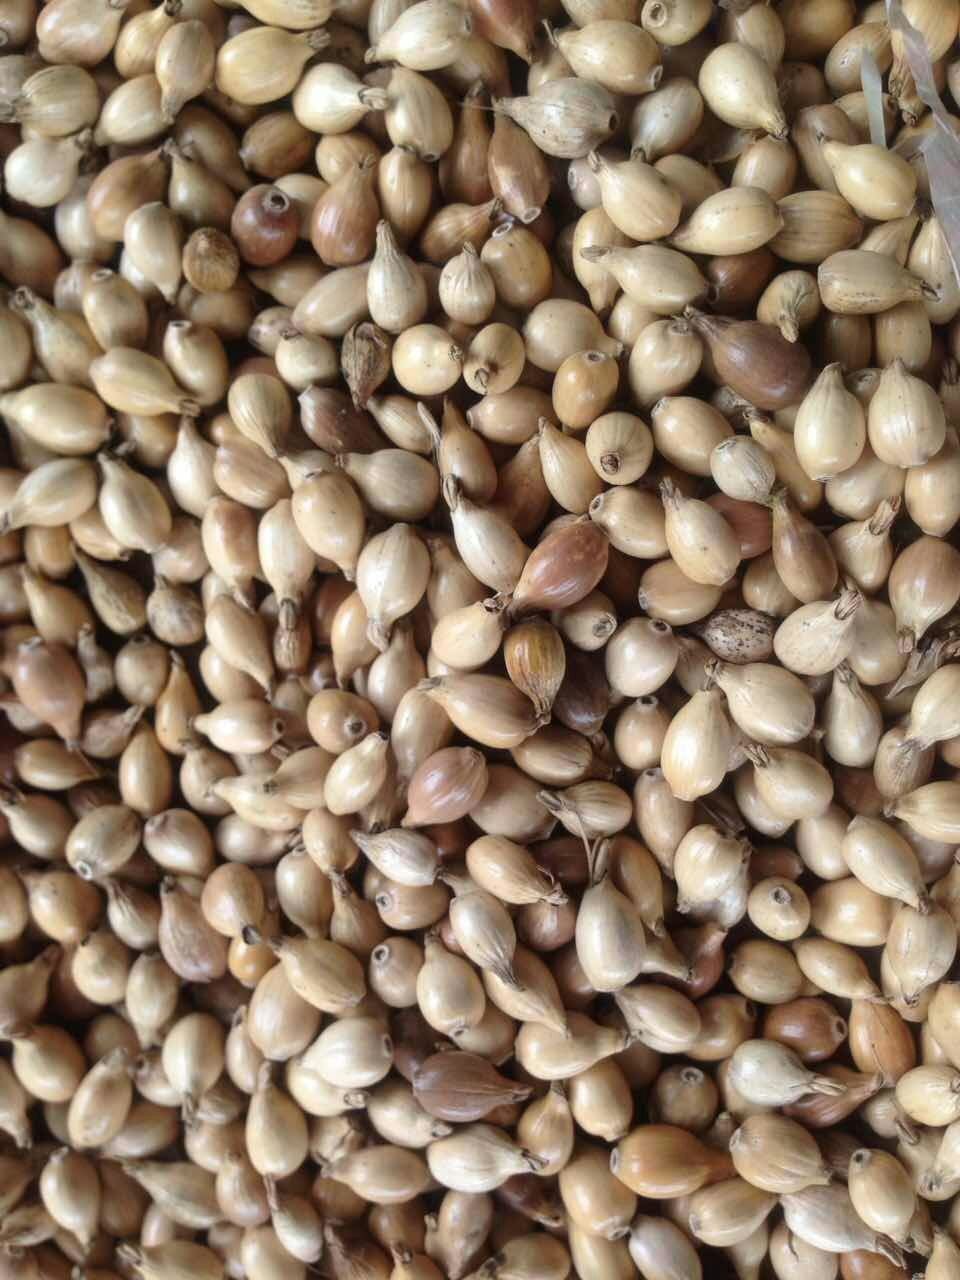 Good quality of Whole coix seed with shell